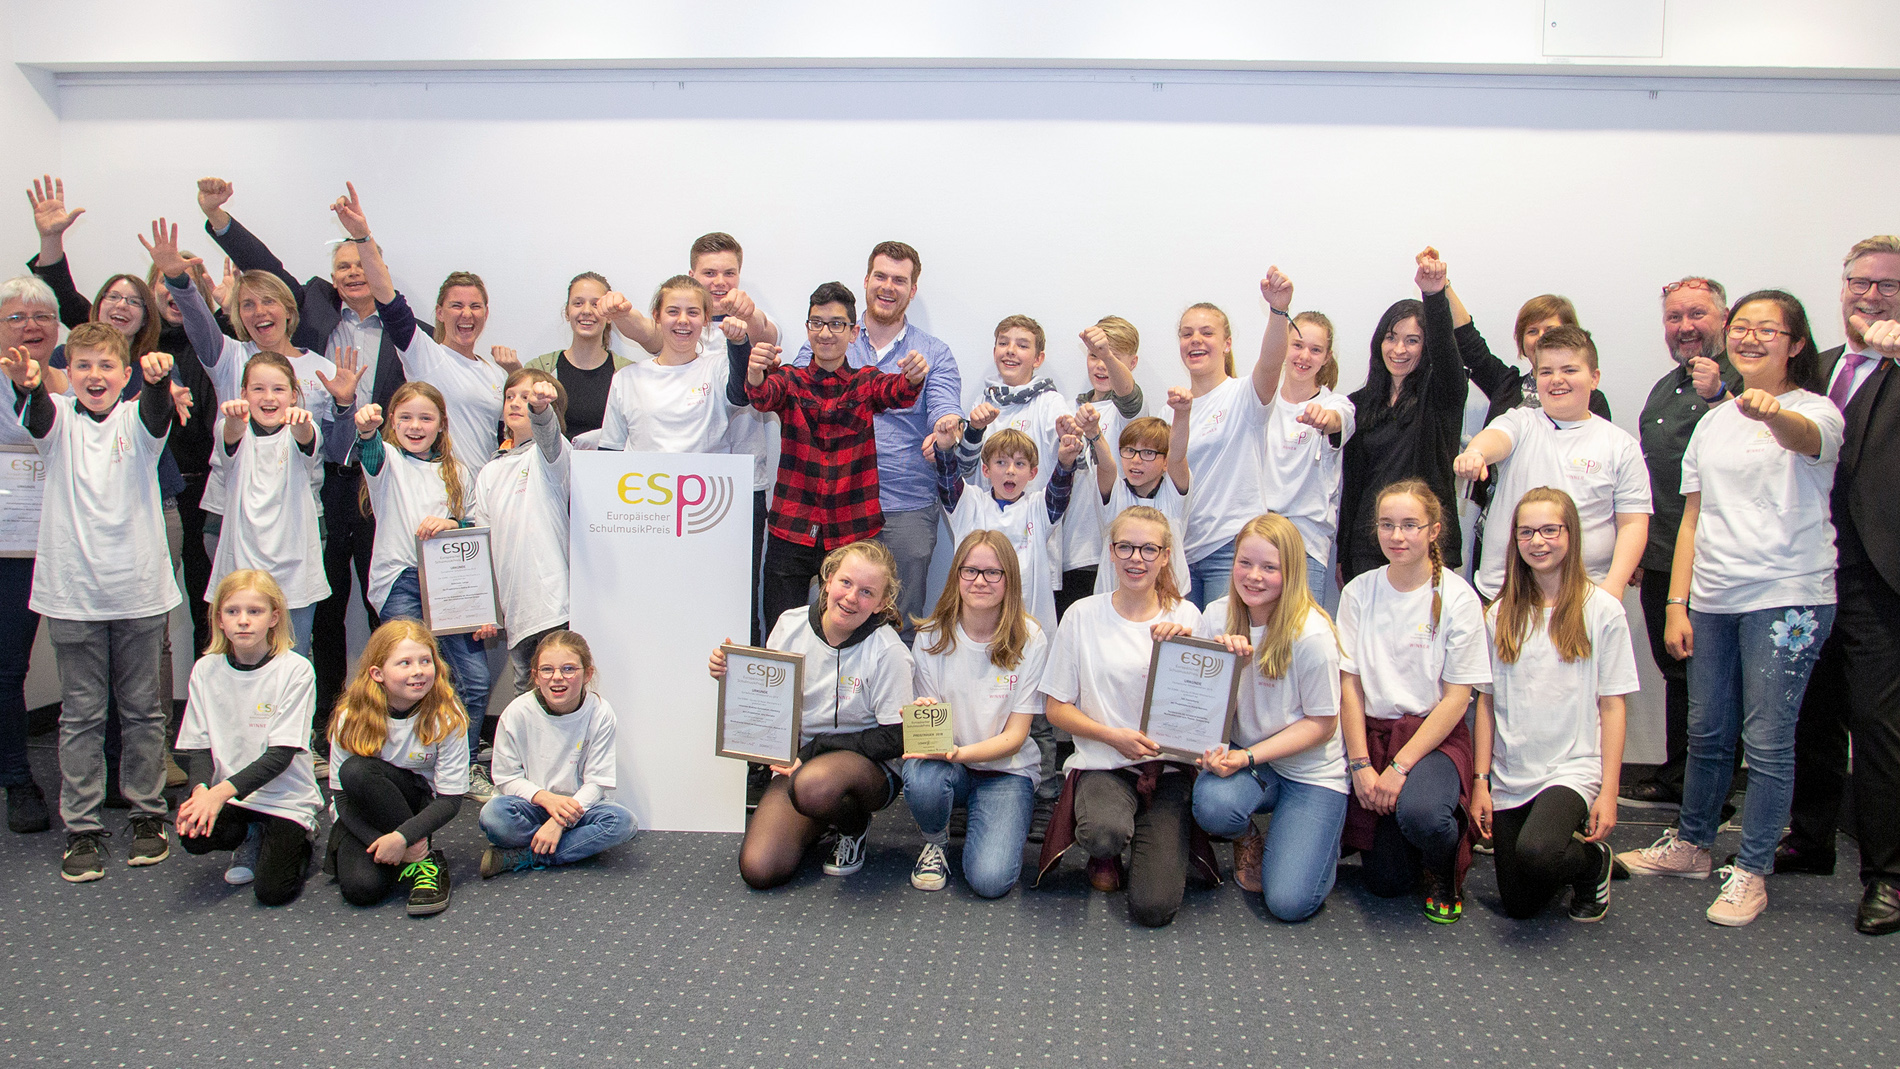 European School Music Prize 2019 - group photo